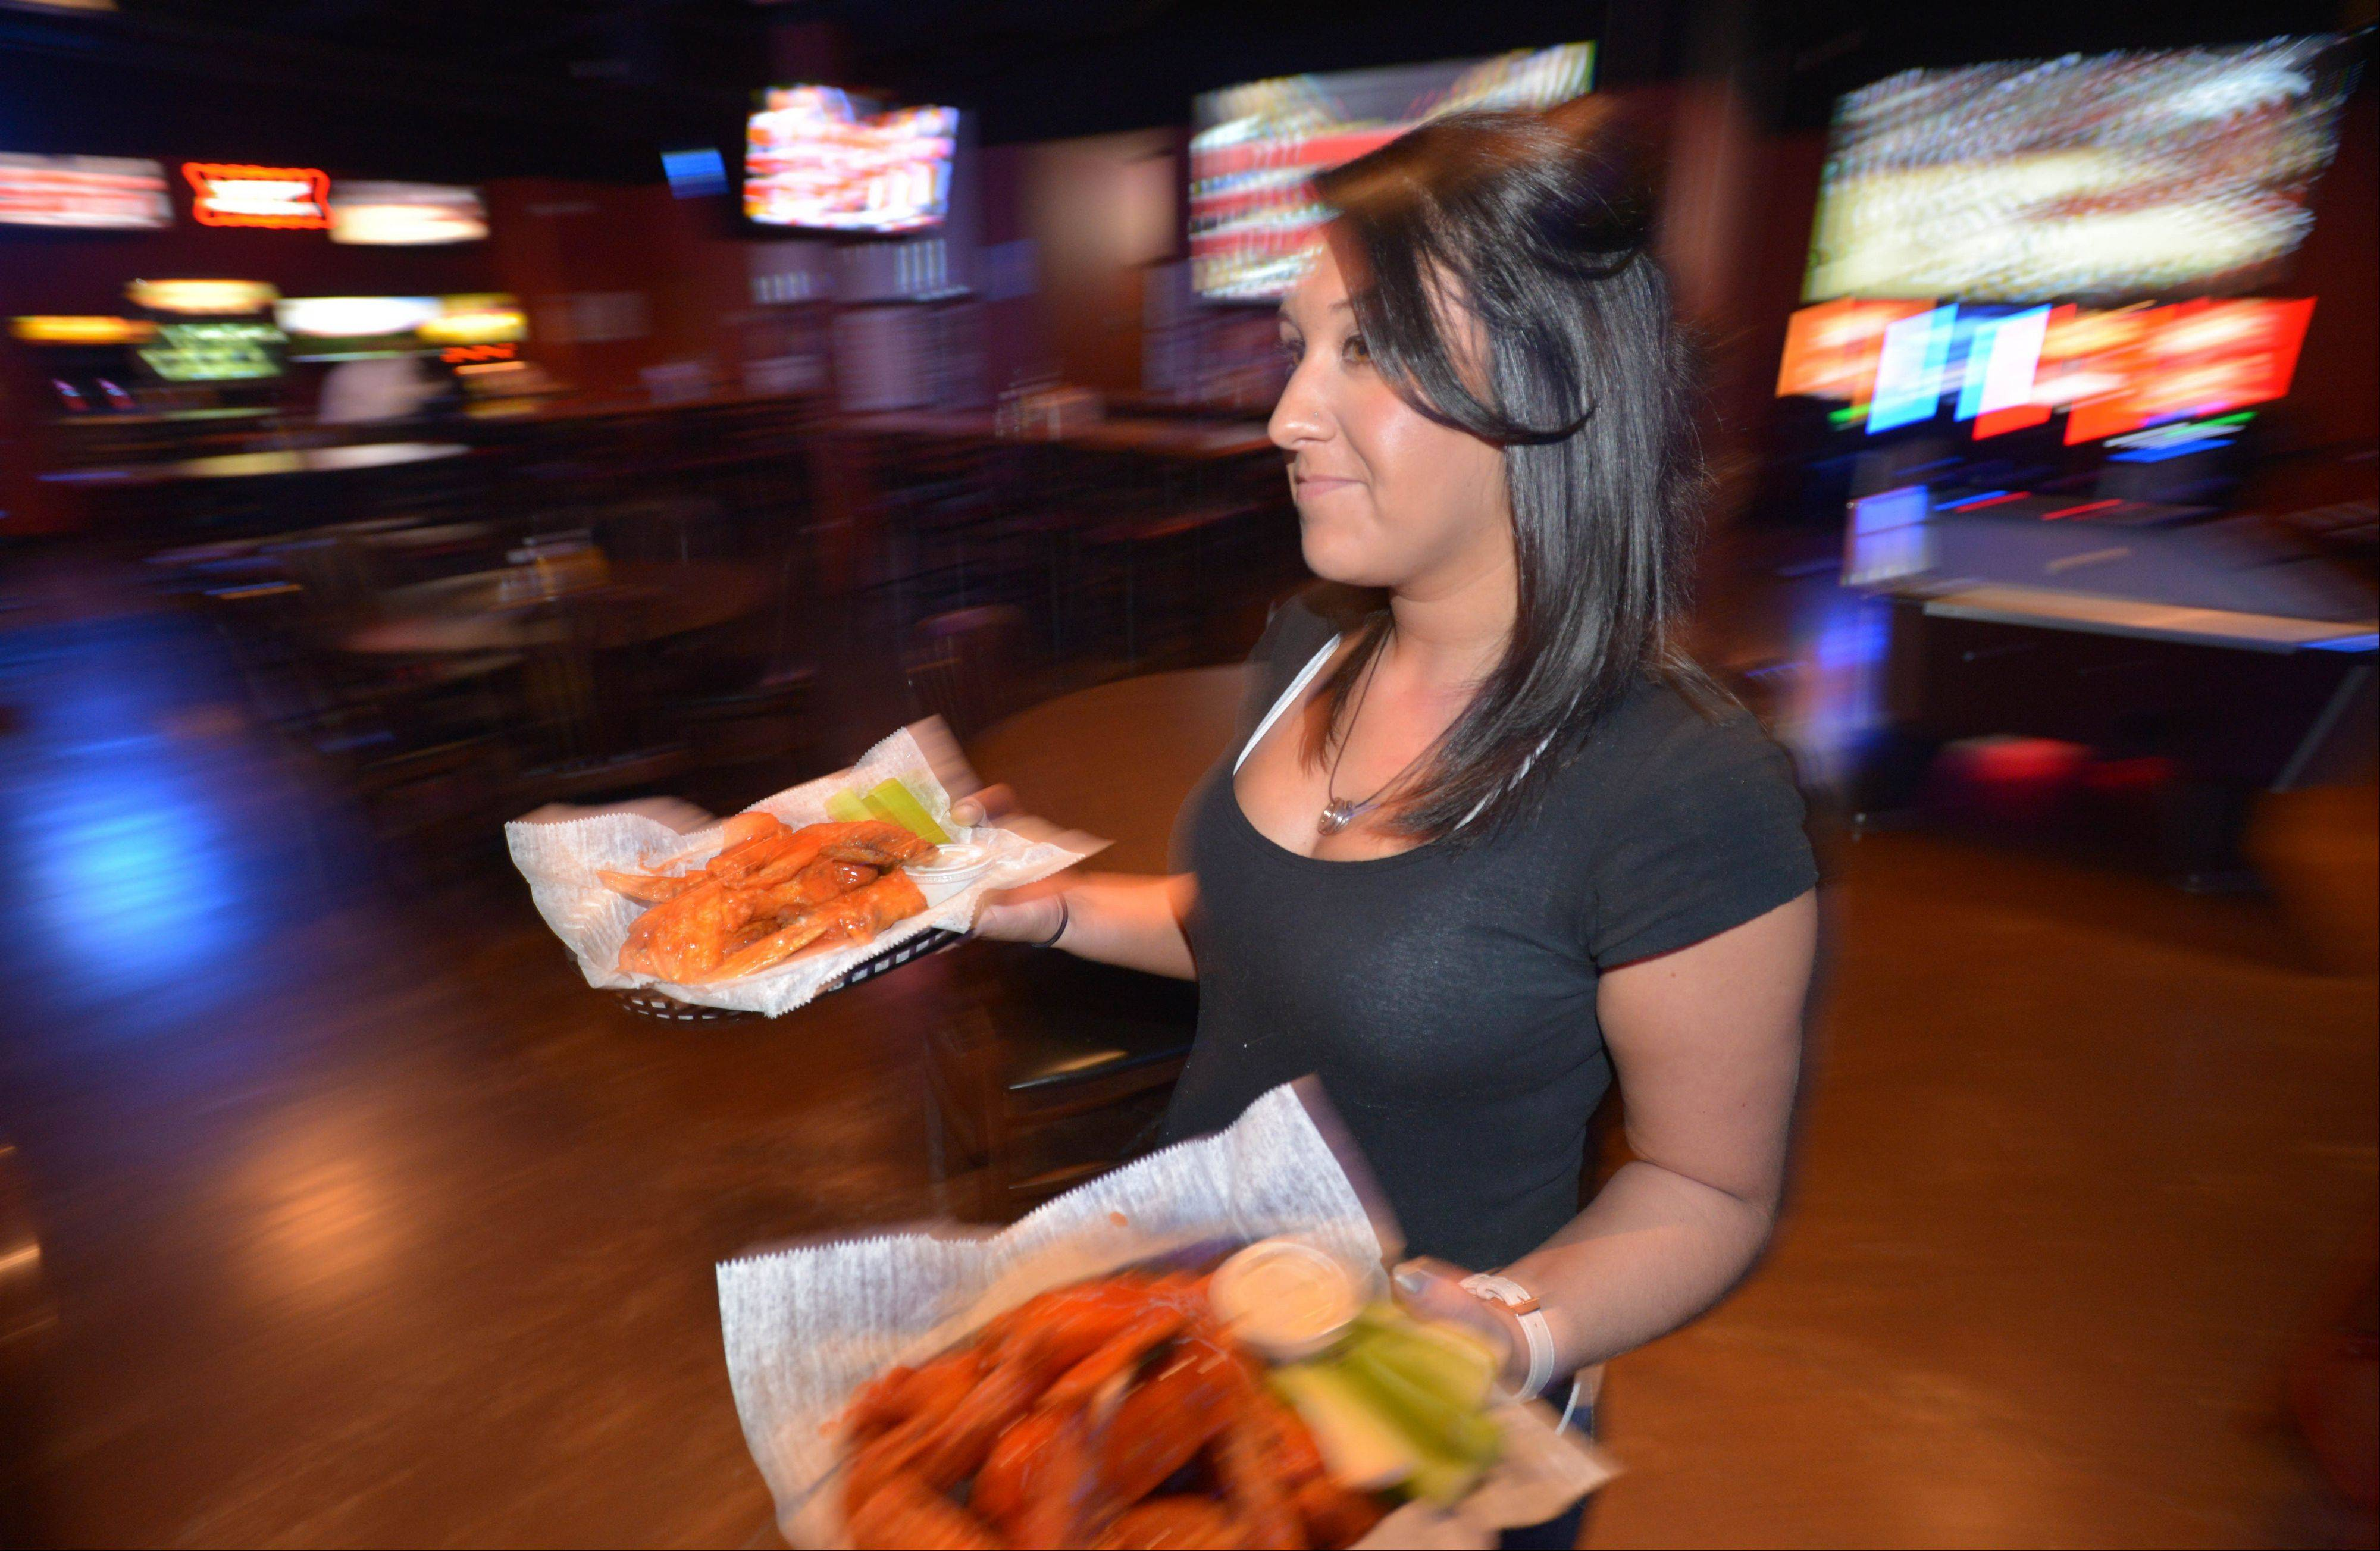 Server Taylor Hatcher brings some hot wings to a table at The Town Bar & Grill in Aurora.